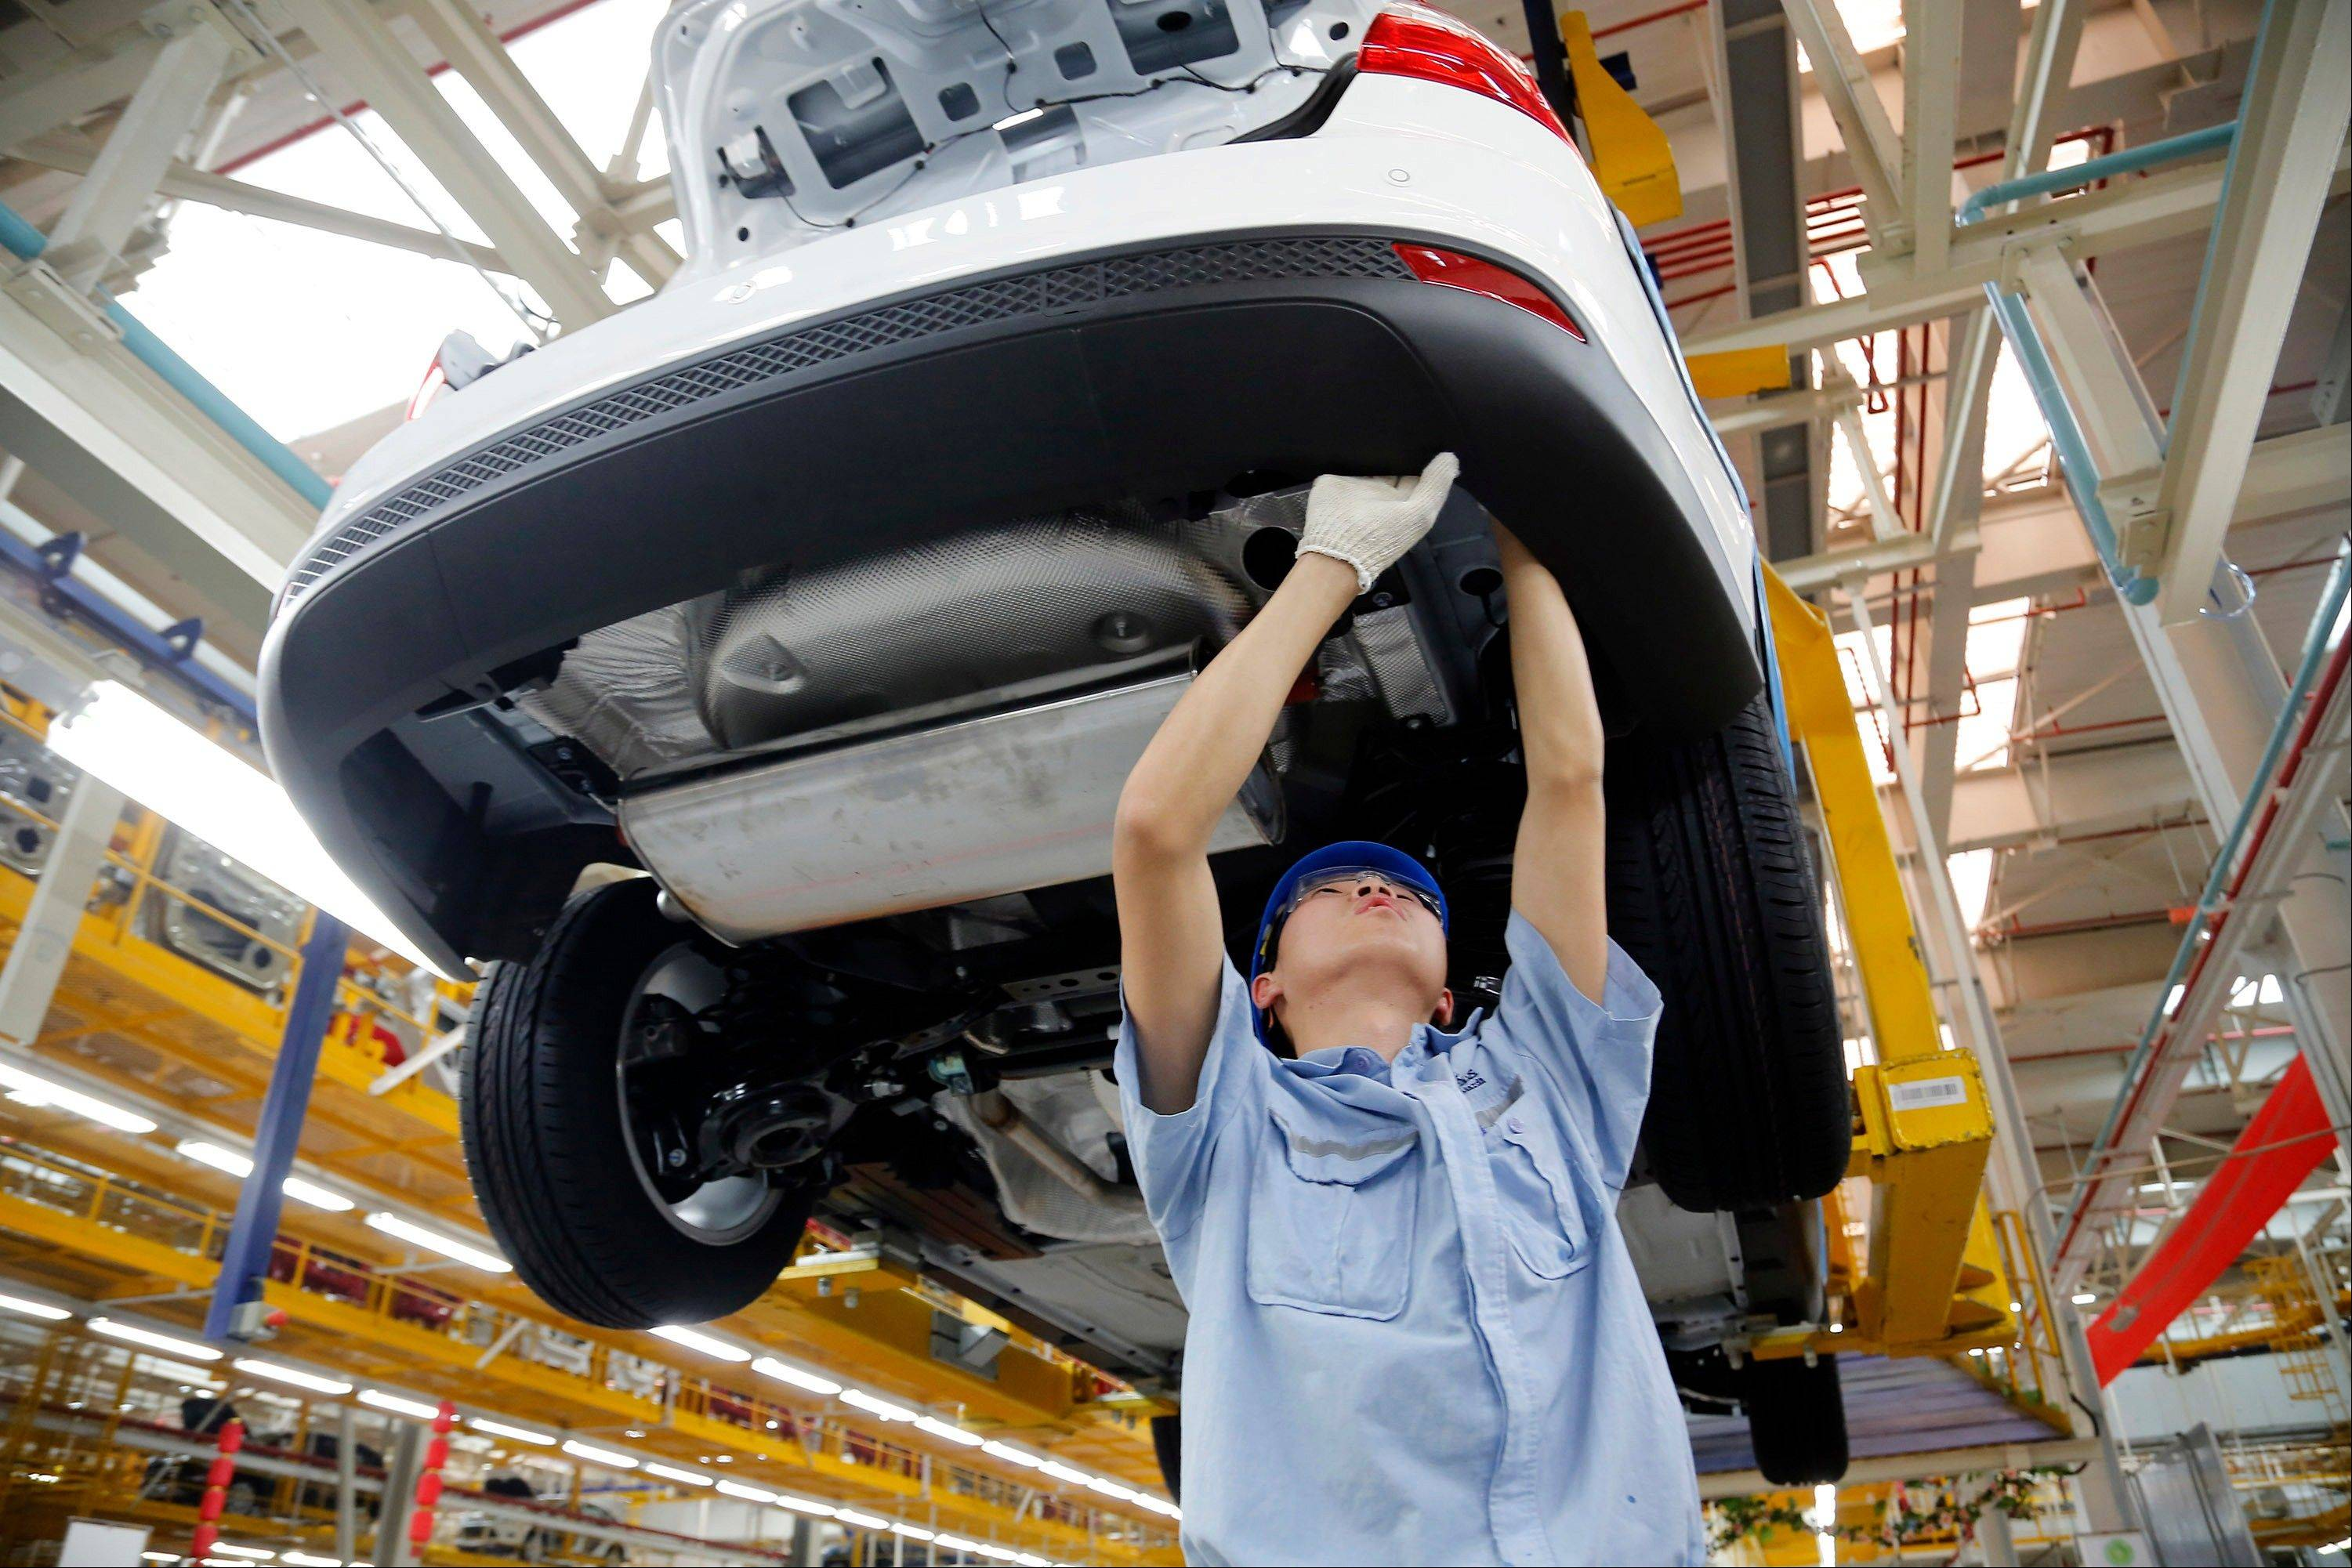 Associated Press/April 16 A worker assembles a vehicle on an assembly line at a Ford factory in Chongqing, China. China�s economy expanded 7.7 percent in the first three months of the year compared with a year earlier and that was a slowdown from its previous double-digit growth.